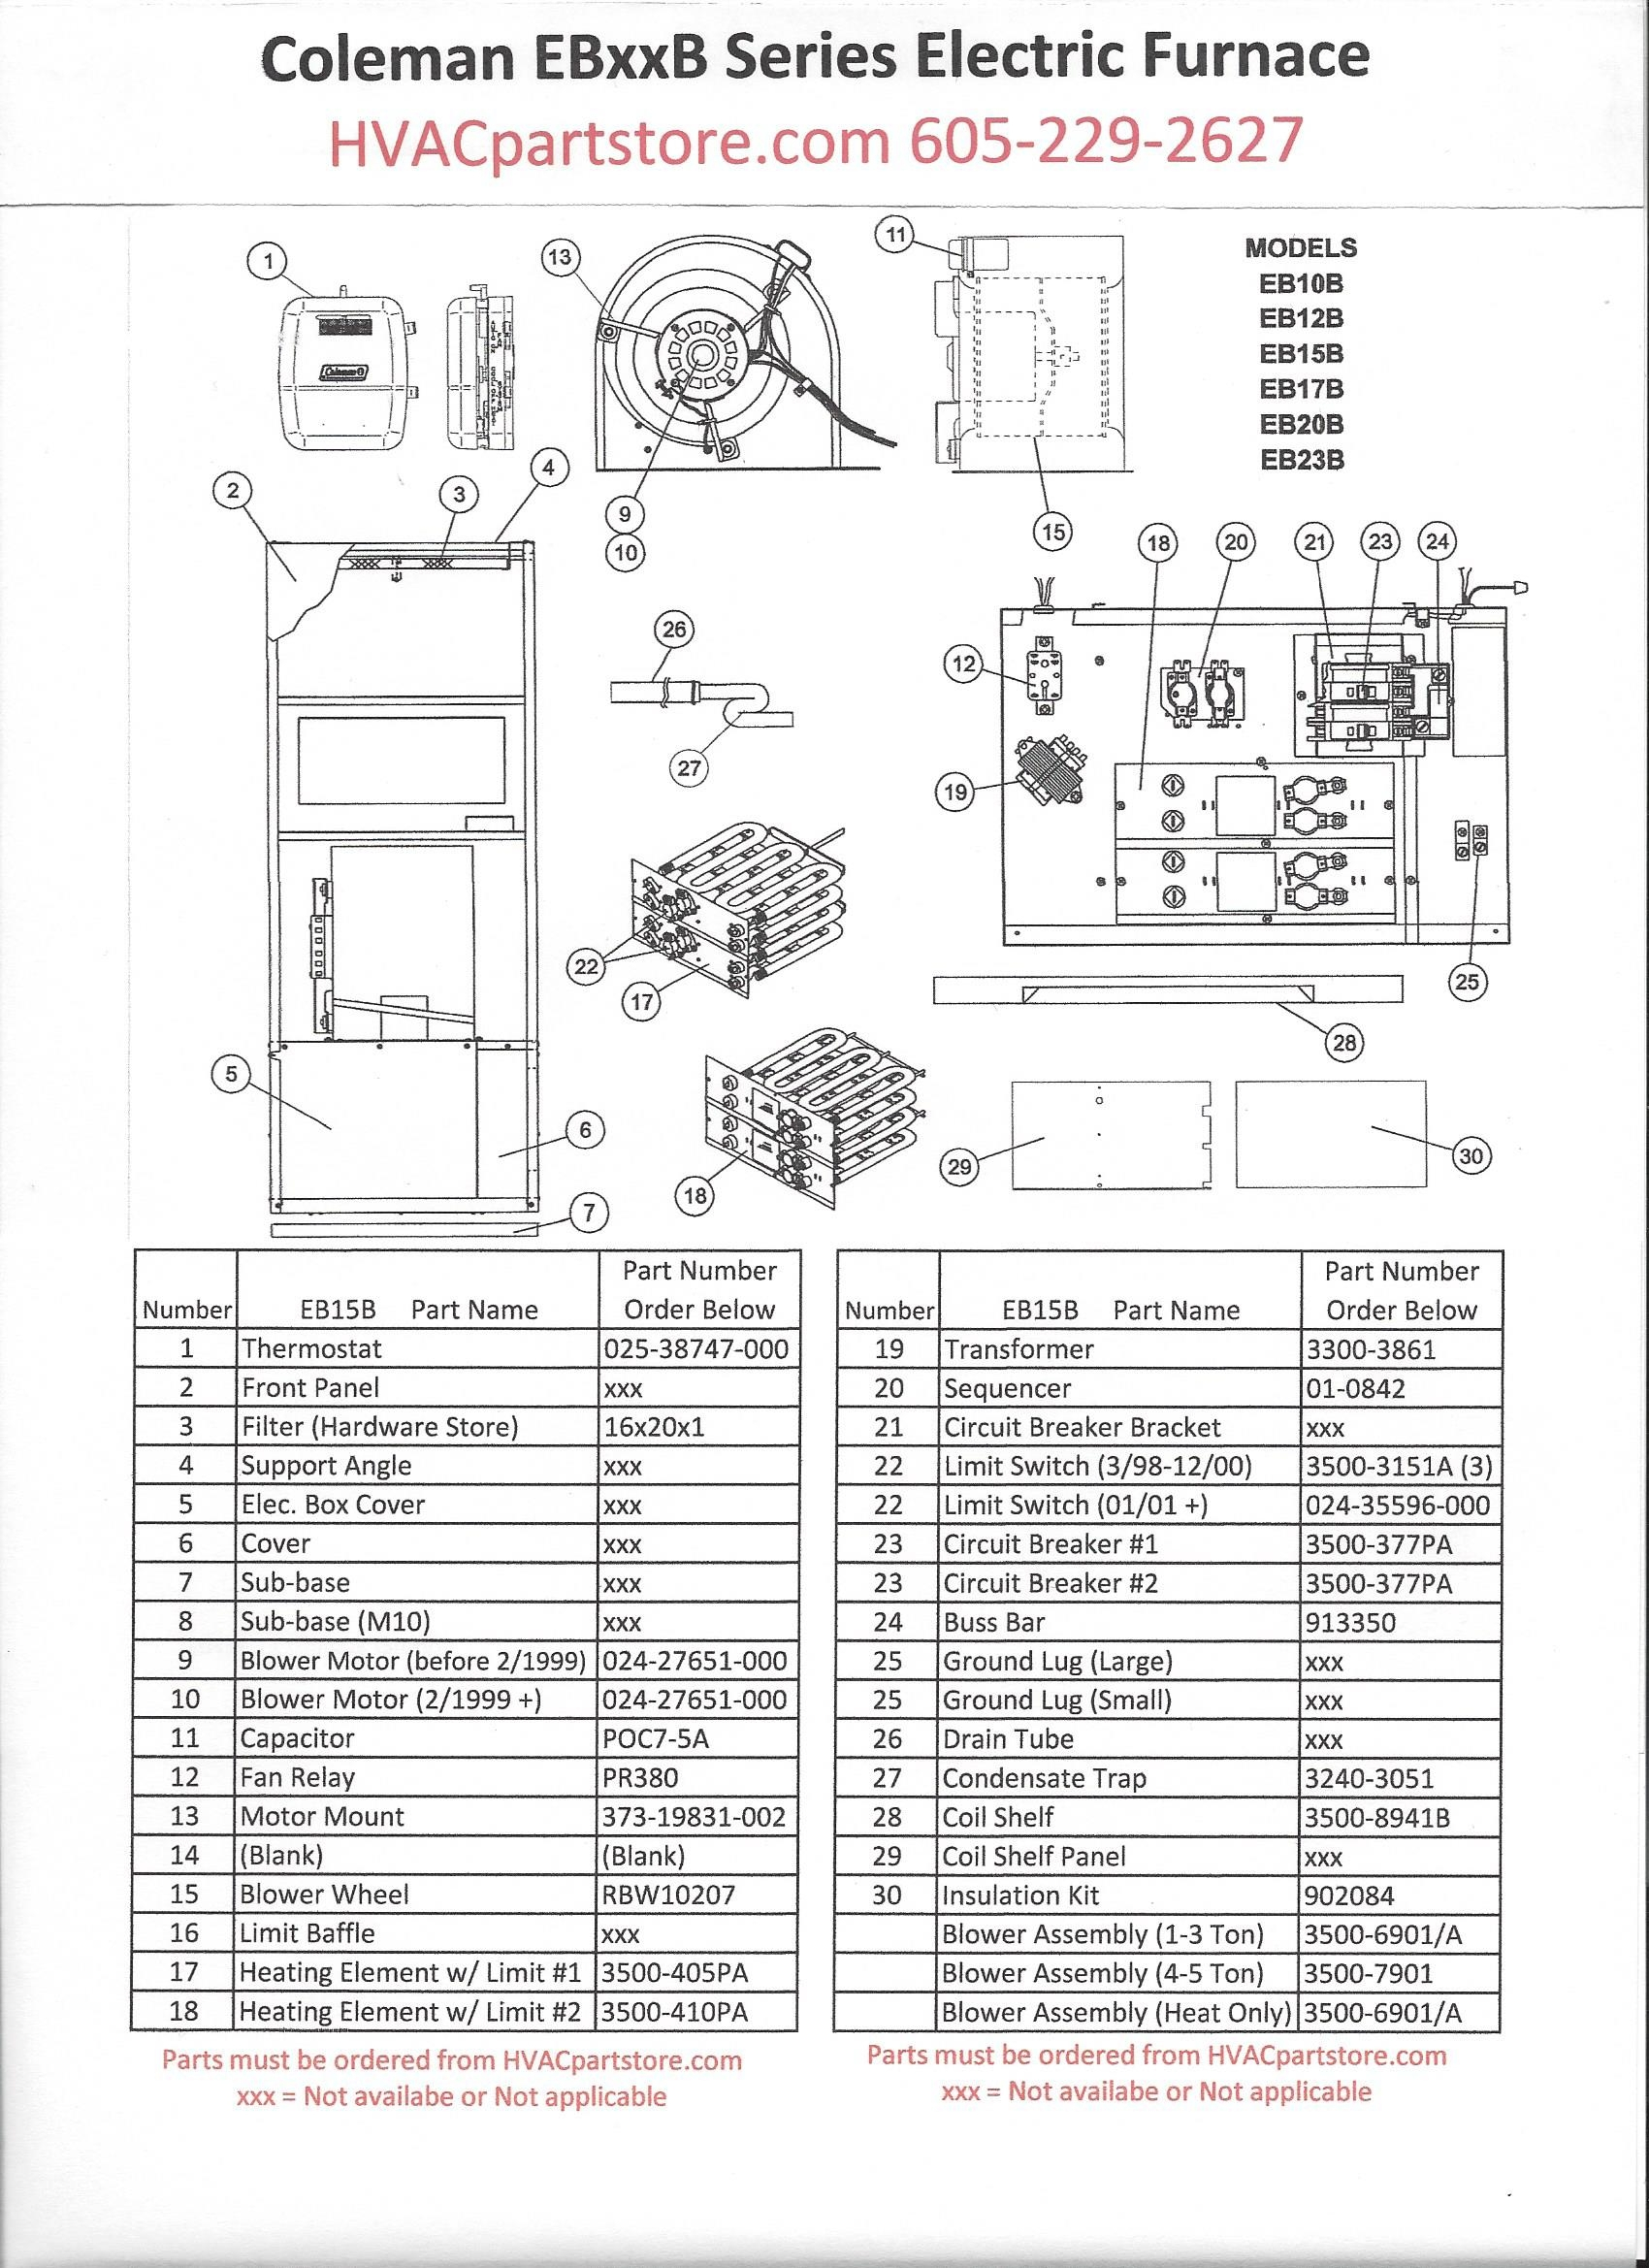 Straight Blade Snowdogg Plow Wiring Diagram. Snowdogg Plows ... on boss wiring diagram, ferris wiring diagram, blizzard wiring diagram, kawasaki wiring diagram, snowex wiring diagram, briggs & stratton wiring diagram, meyer wiring diagram, curtis wiring diagram, hiniker wiring diagram, warn wiring diagram, fisher wiring diagram, toro wiring diagram, simplicity wiring diagram, western wiring diagram, snapper wiring diagram,